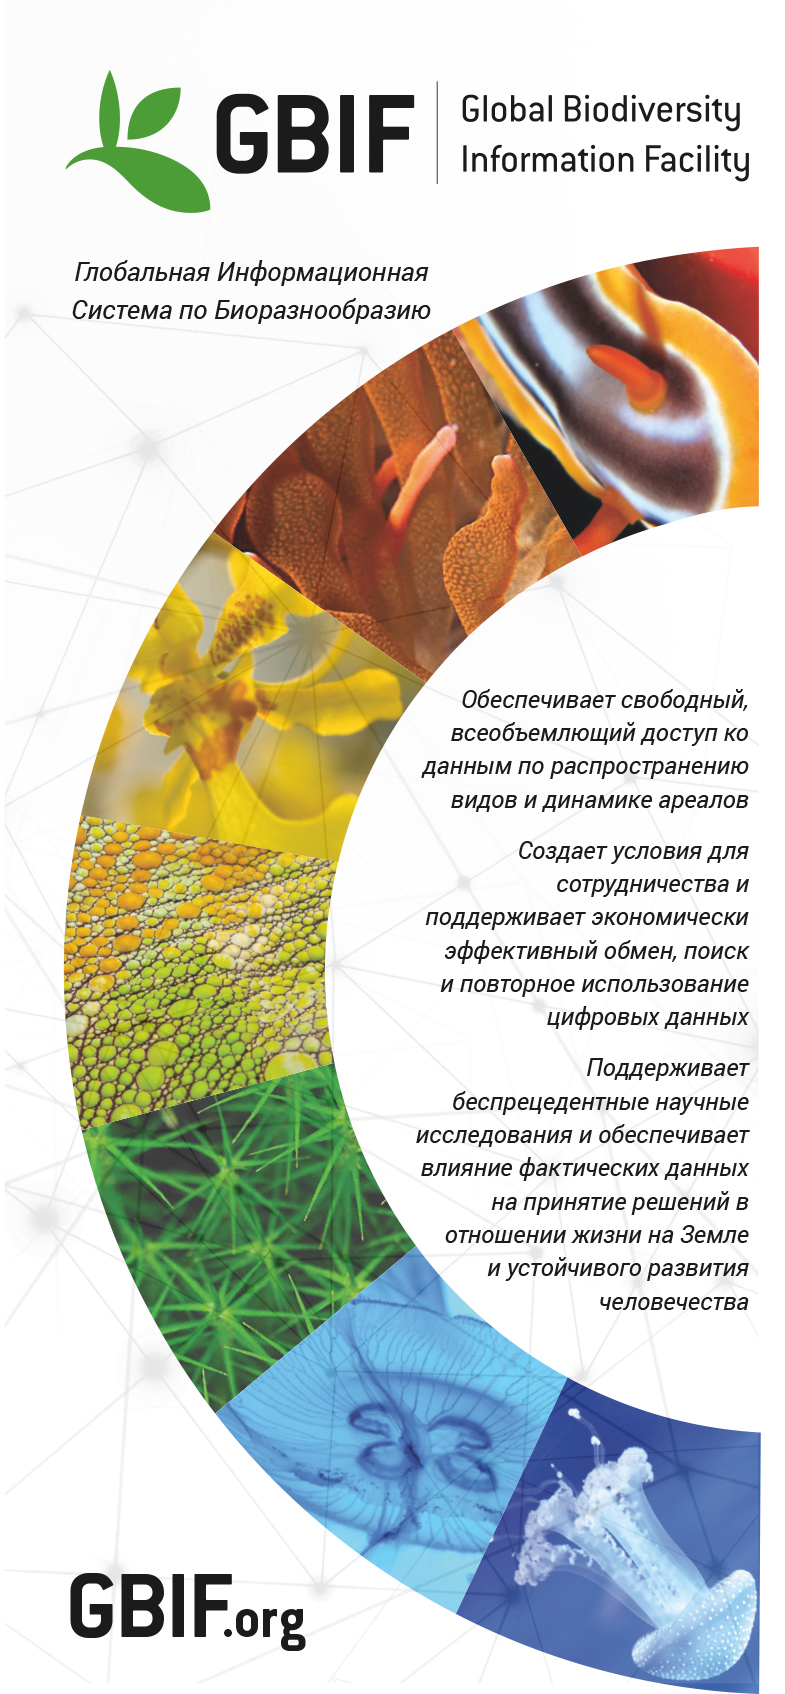 GBIF brochure, 2016 edition - Russian